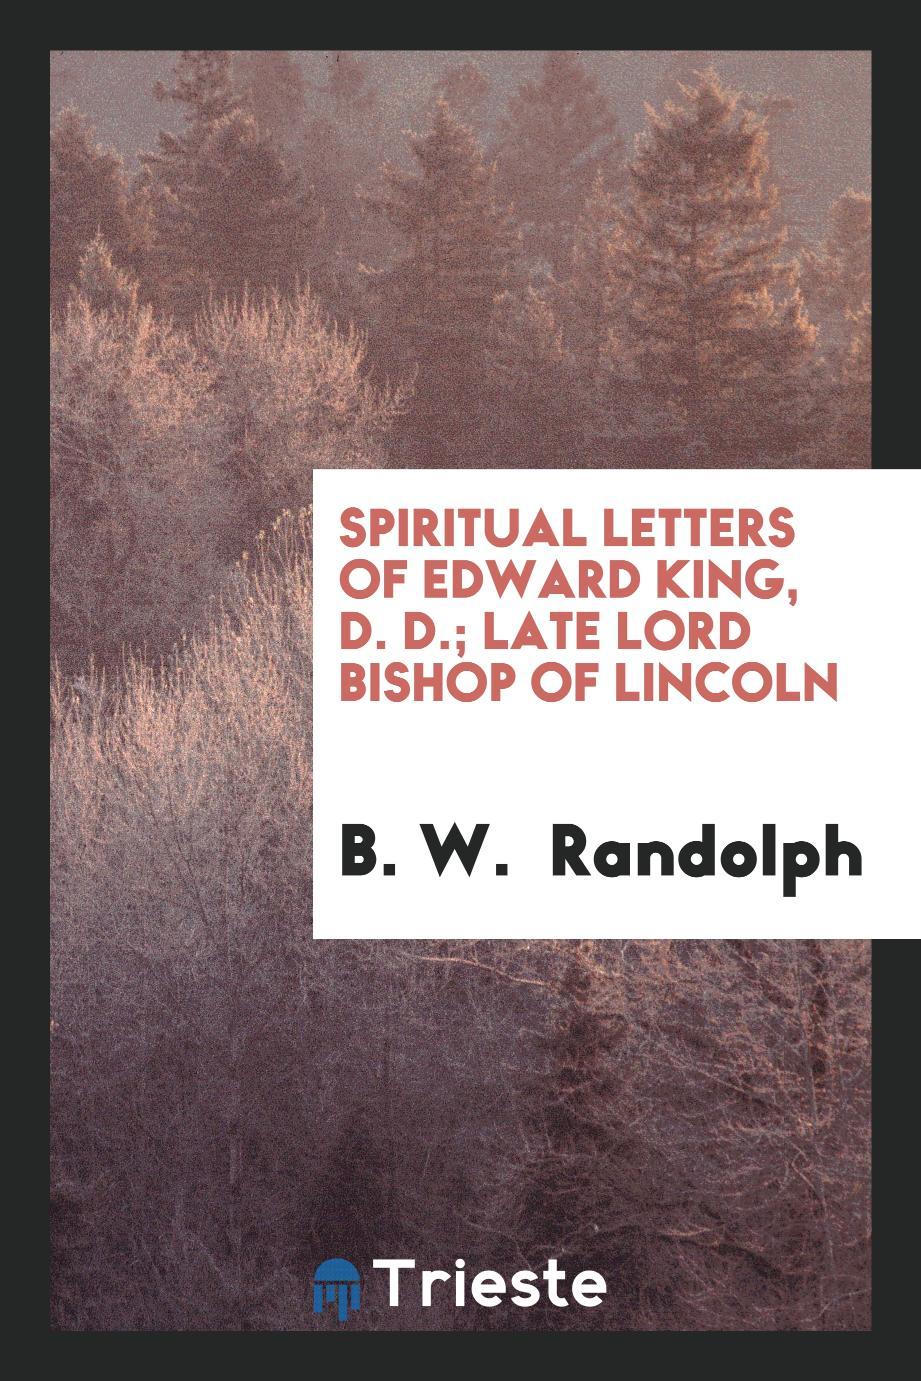 Spiritual letters of Edward King, D. D.; Late Lord Bishop of Lincoln